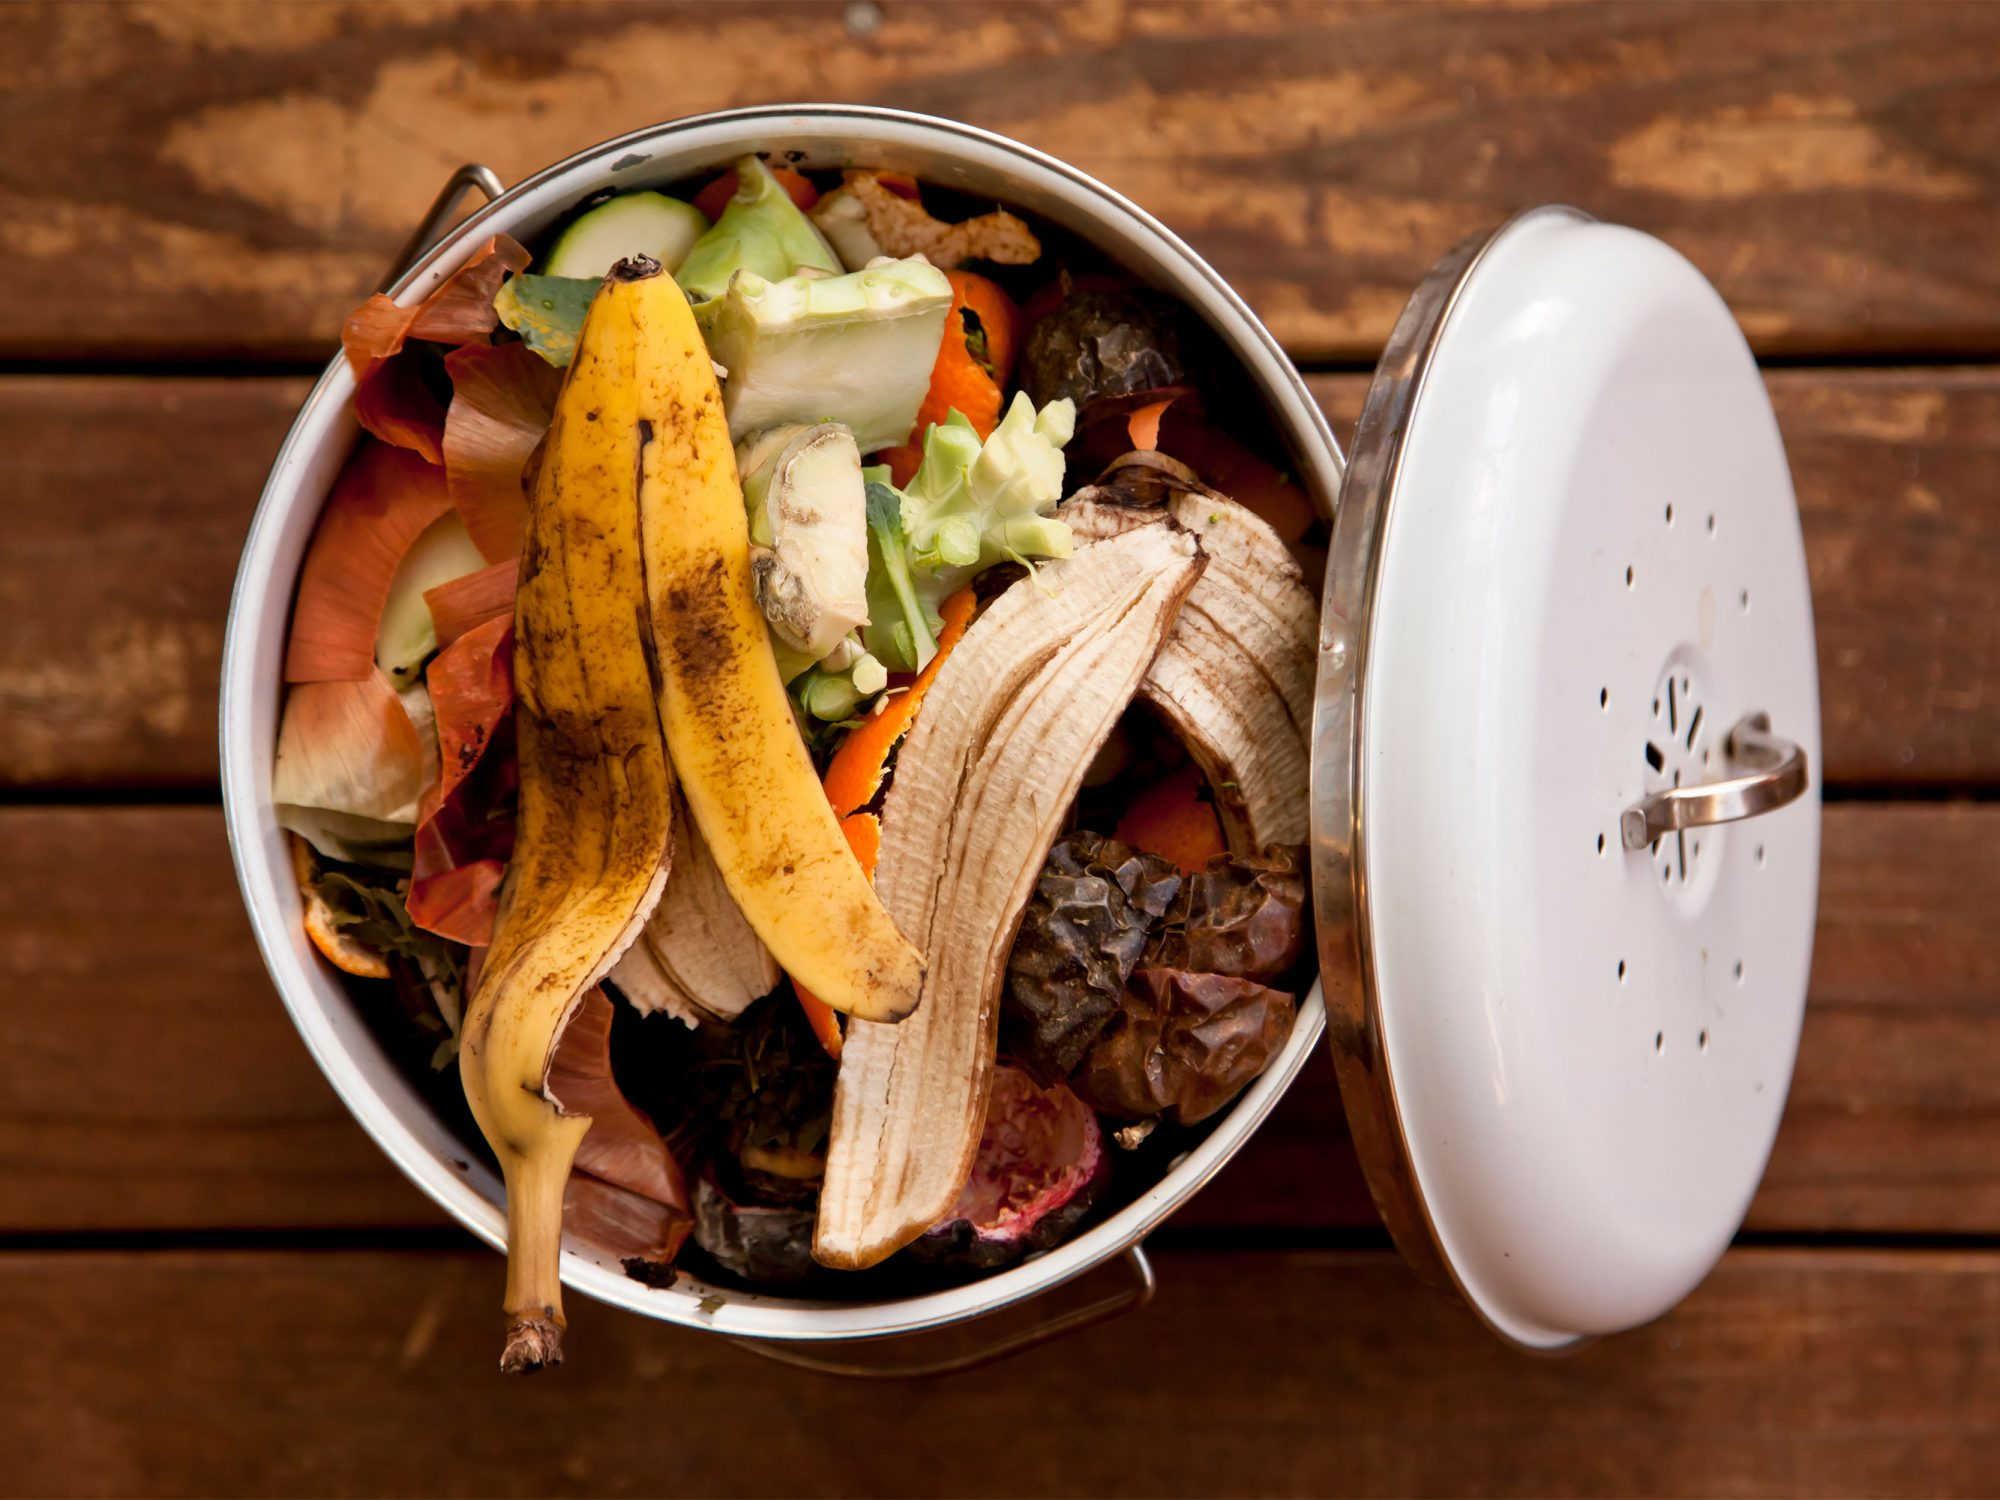 Food waste in white bin